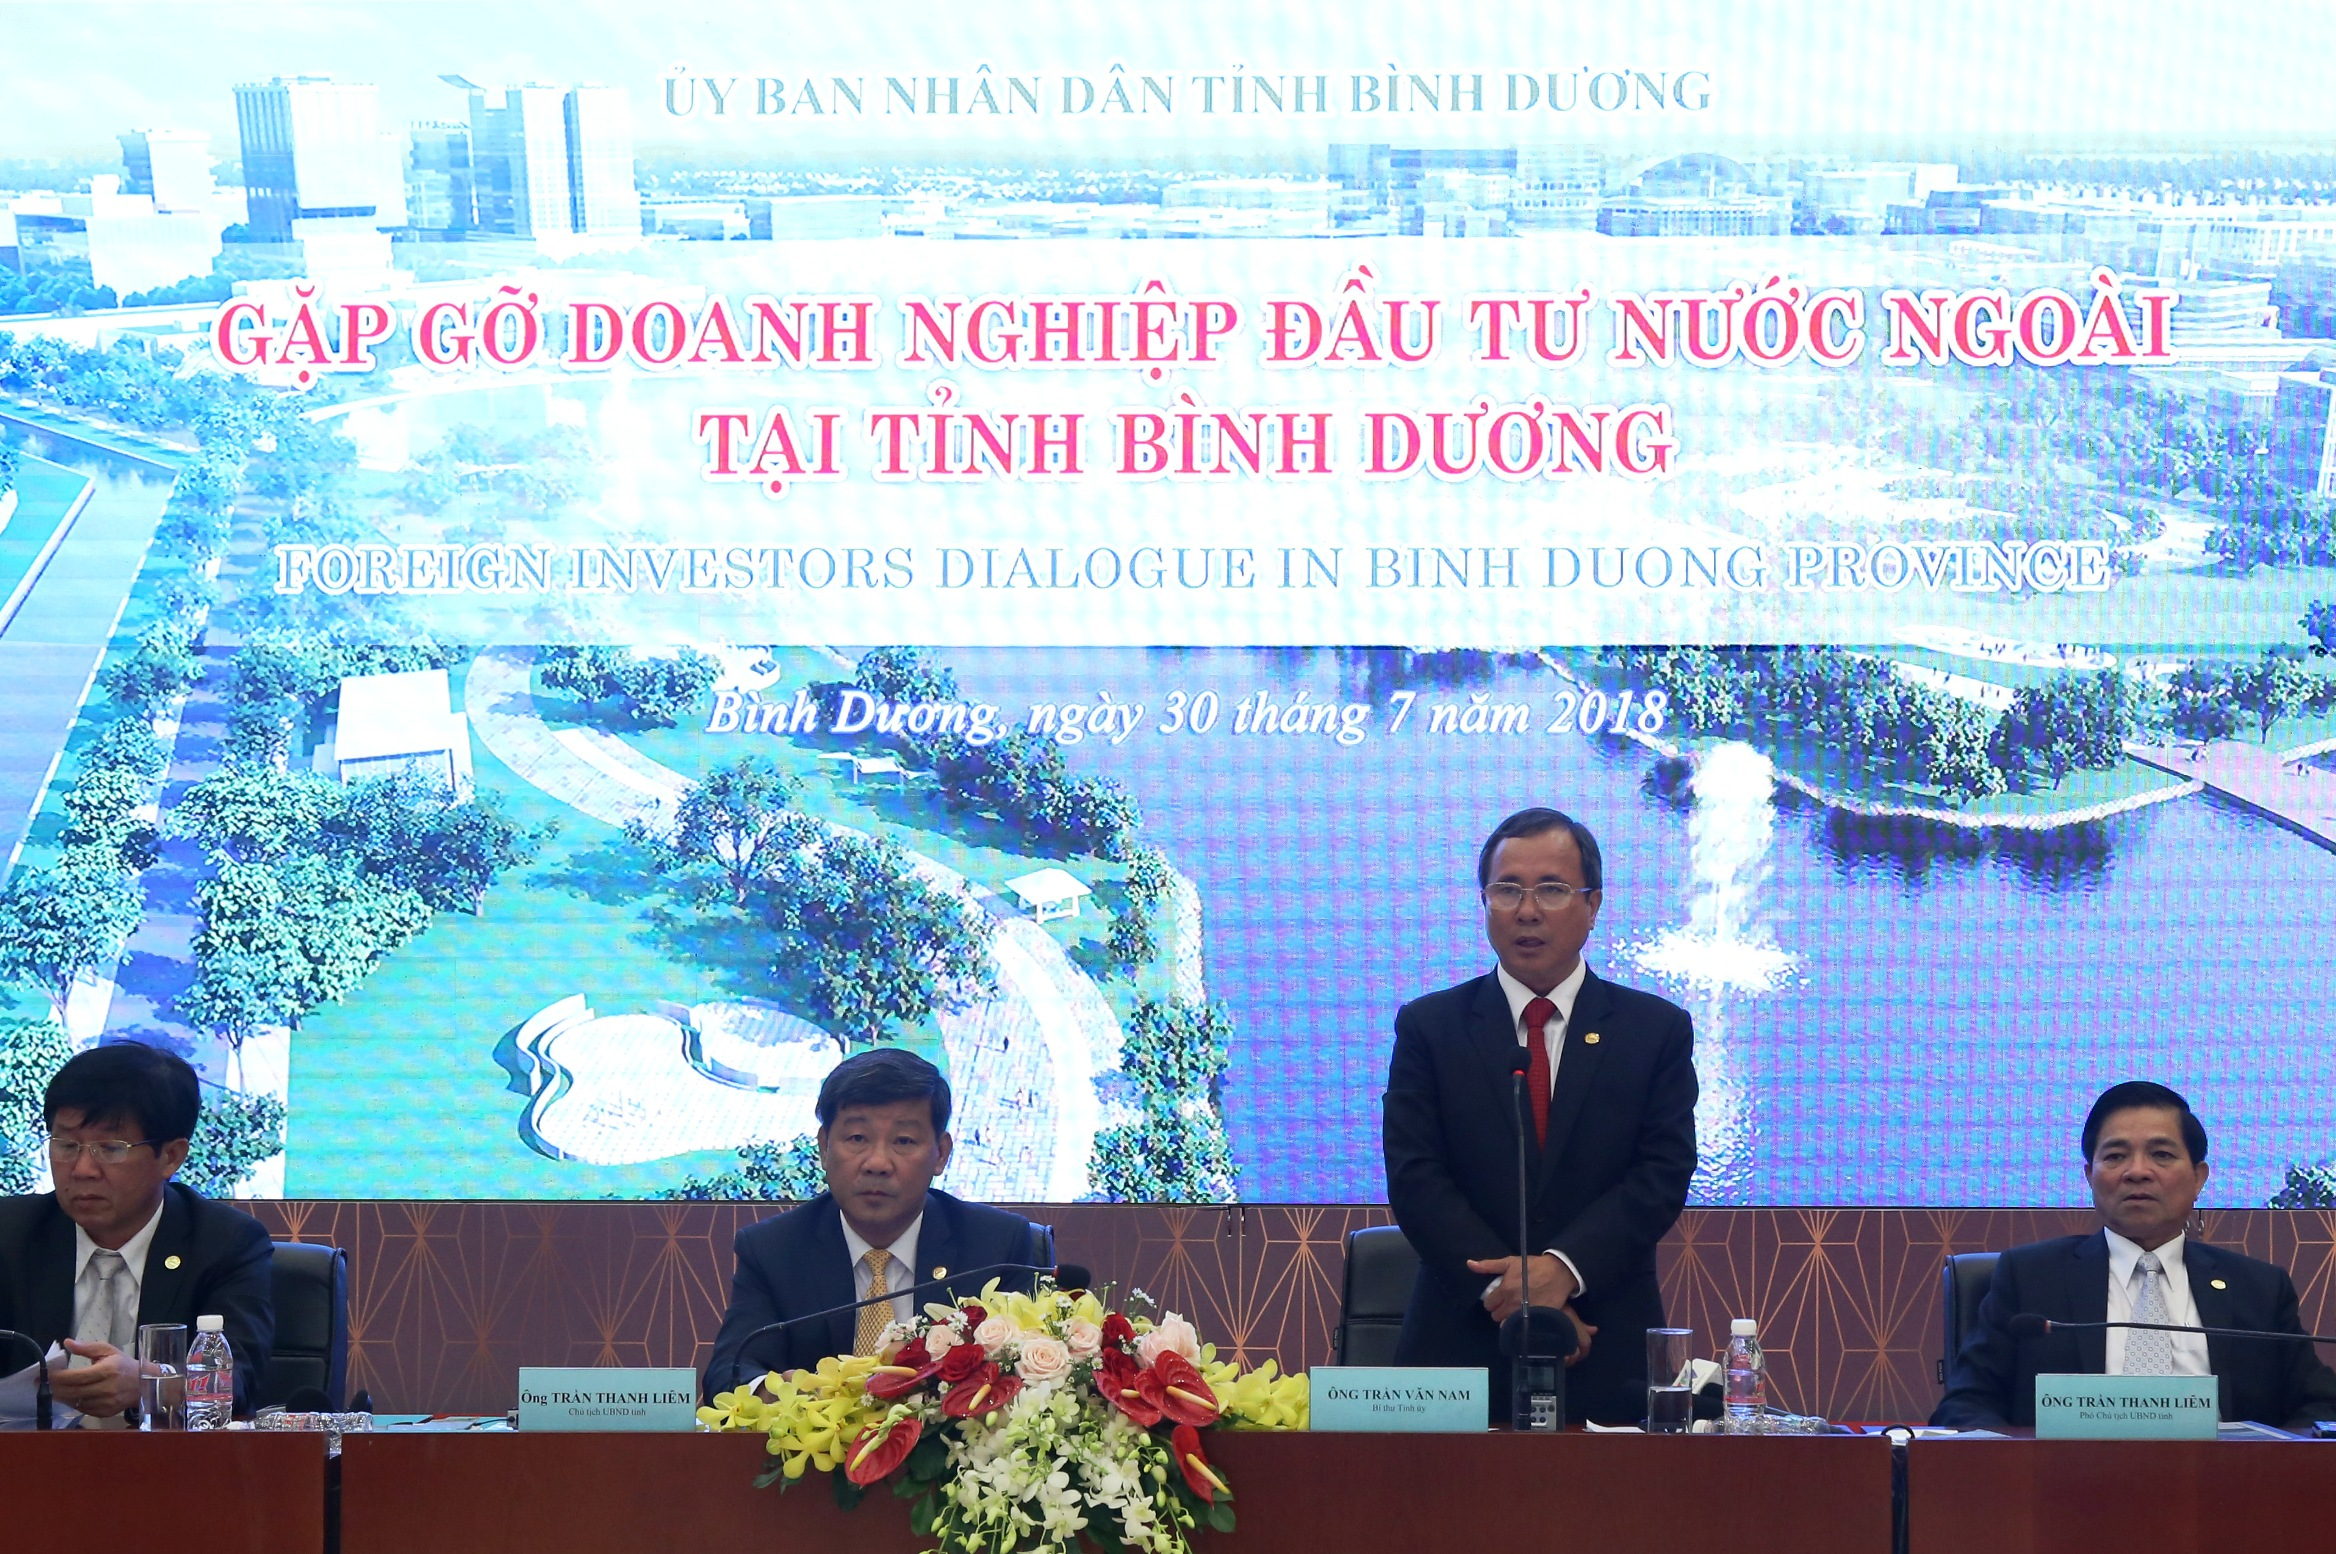 Binh Duong province: FDI forecast to exceed USD7 billion in 2016-2020